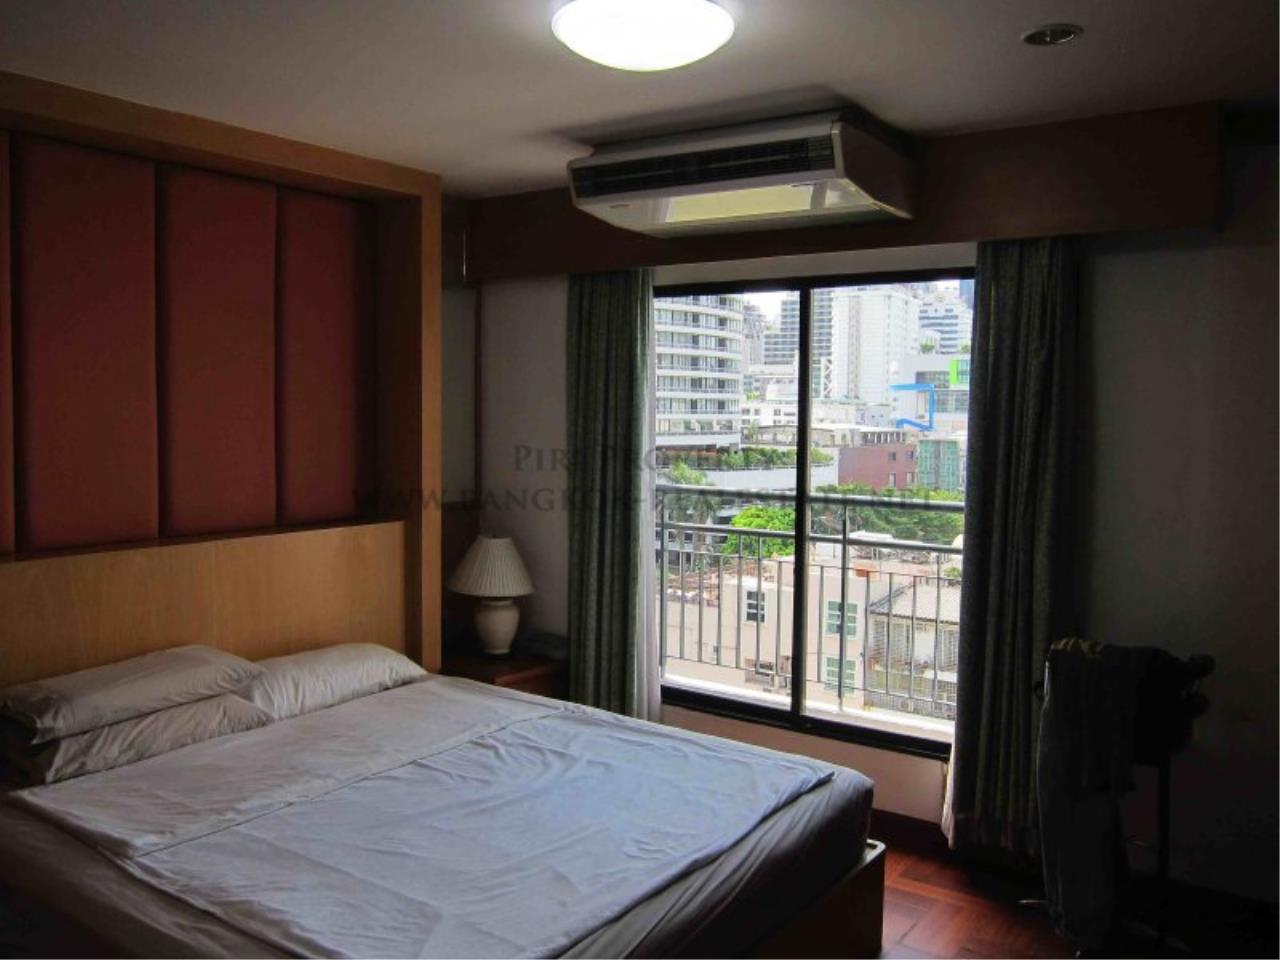 Piri Property Agency's Liberty Park 2 Condominium - Fully furnished 2 Bedroom Condo for Rent 4